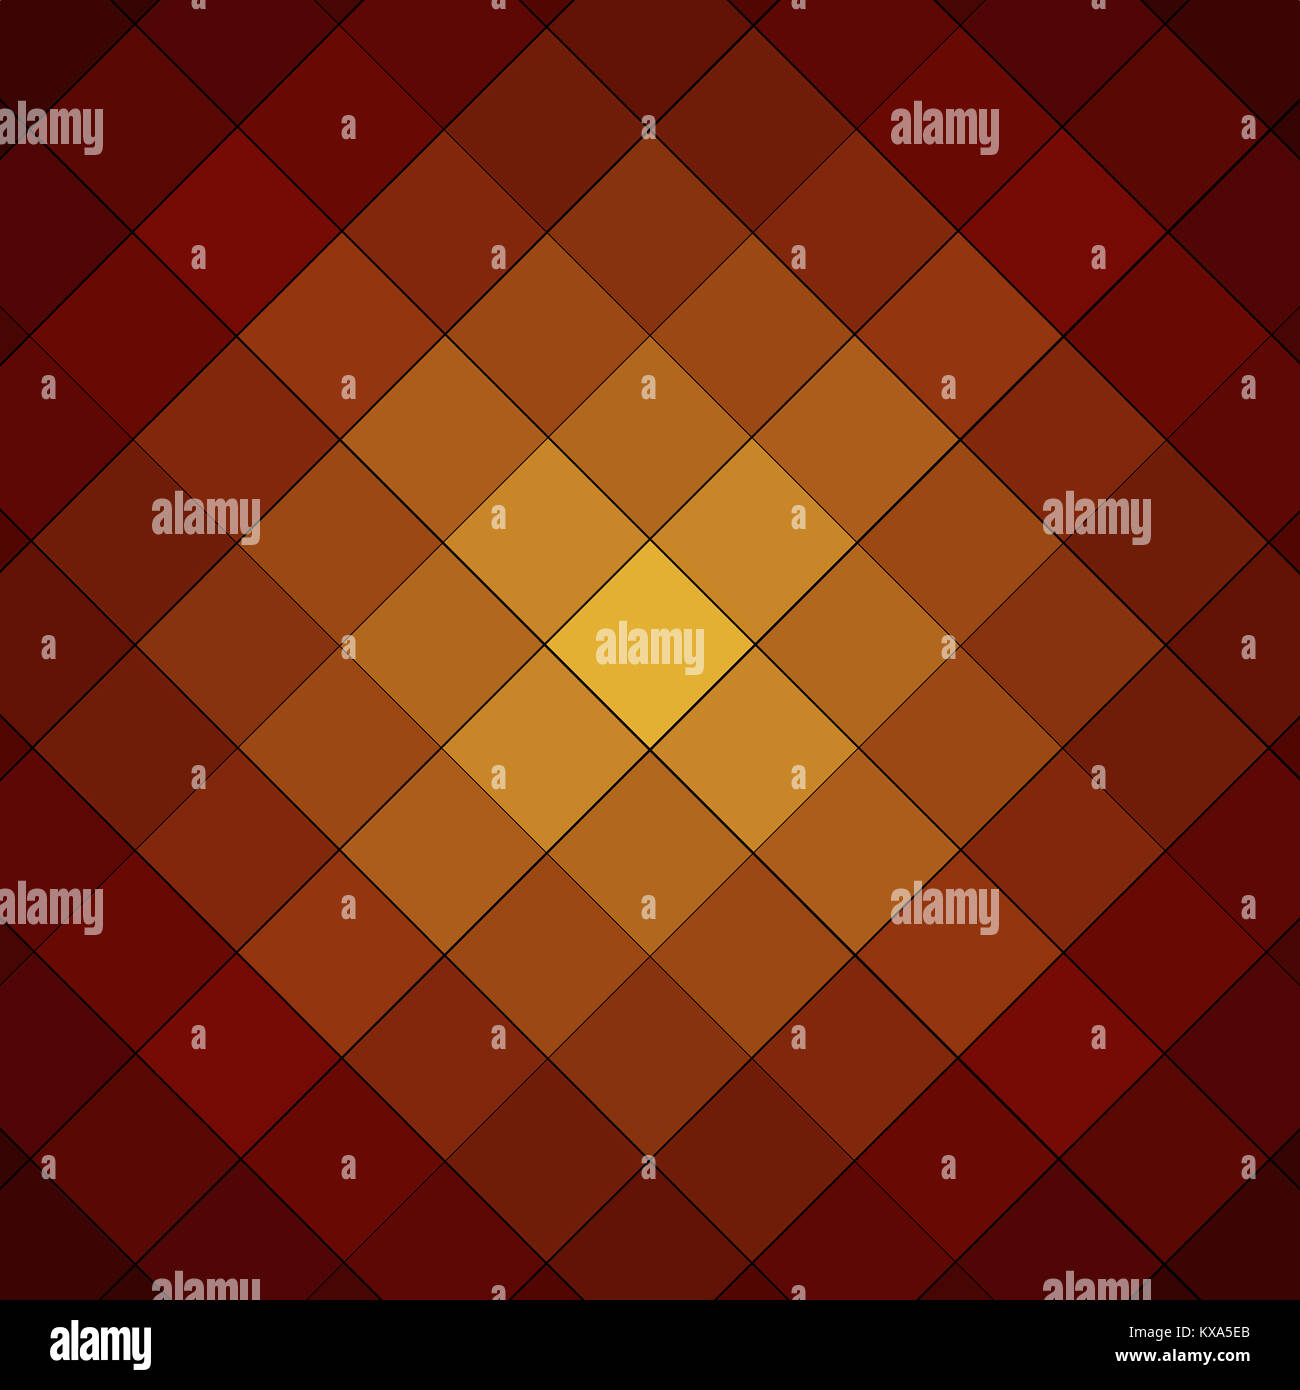 orange and yellow checkered cube background pattern Stock Photo